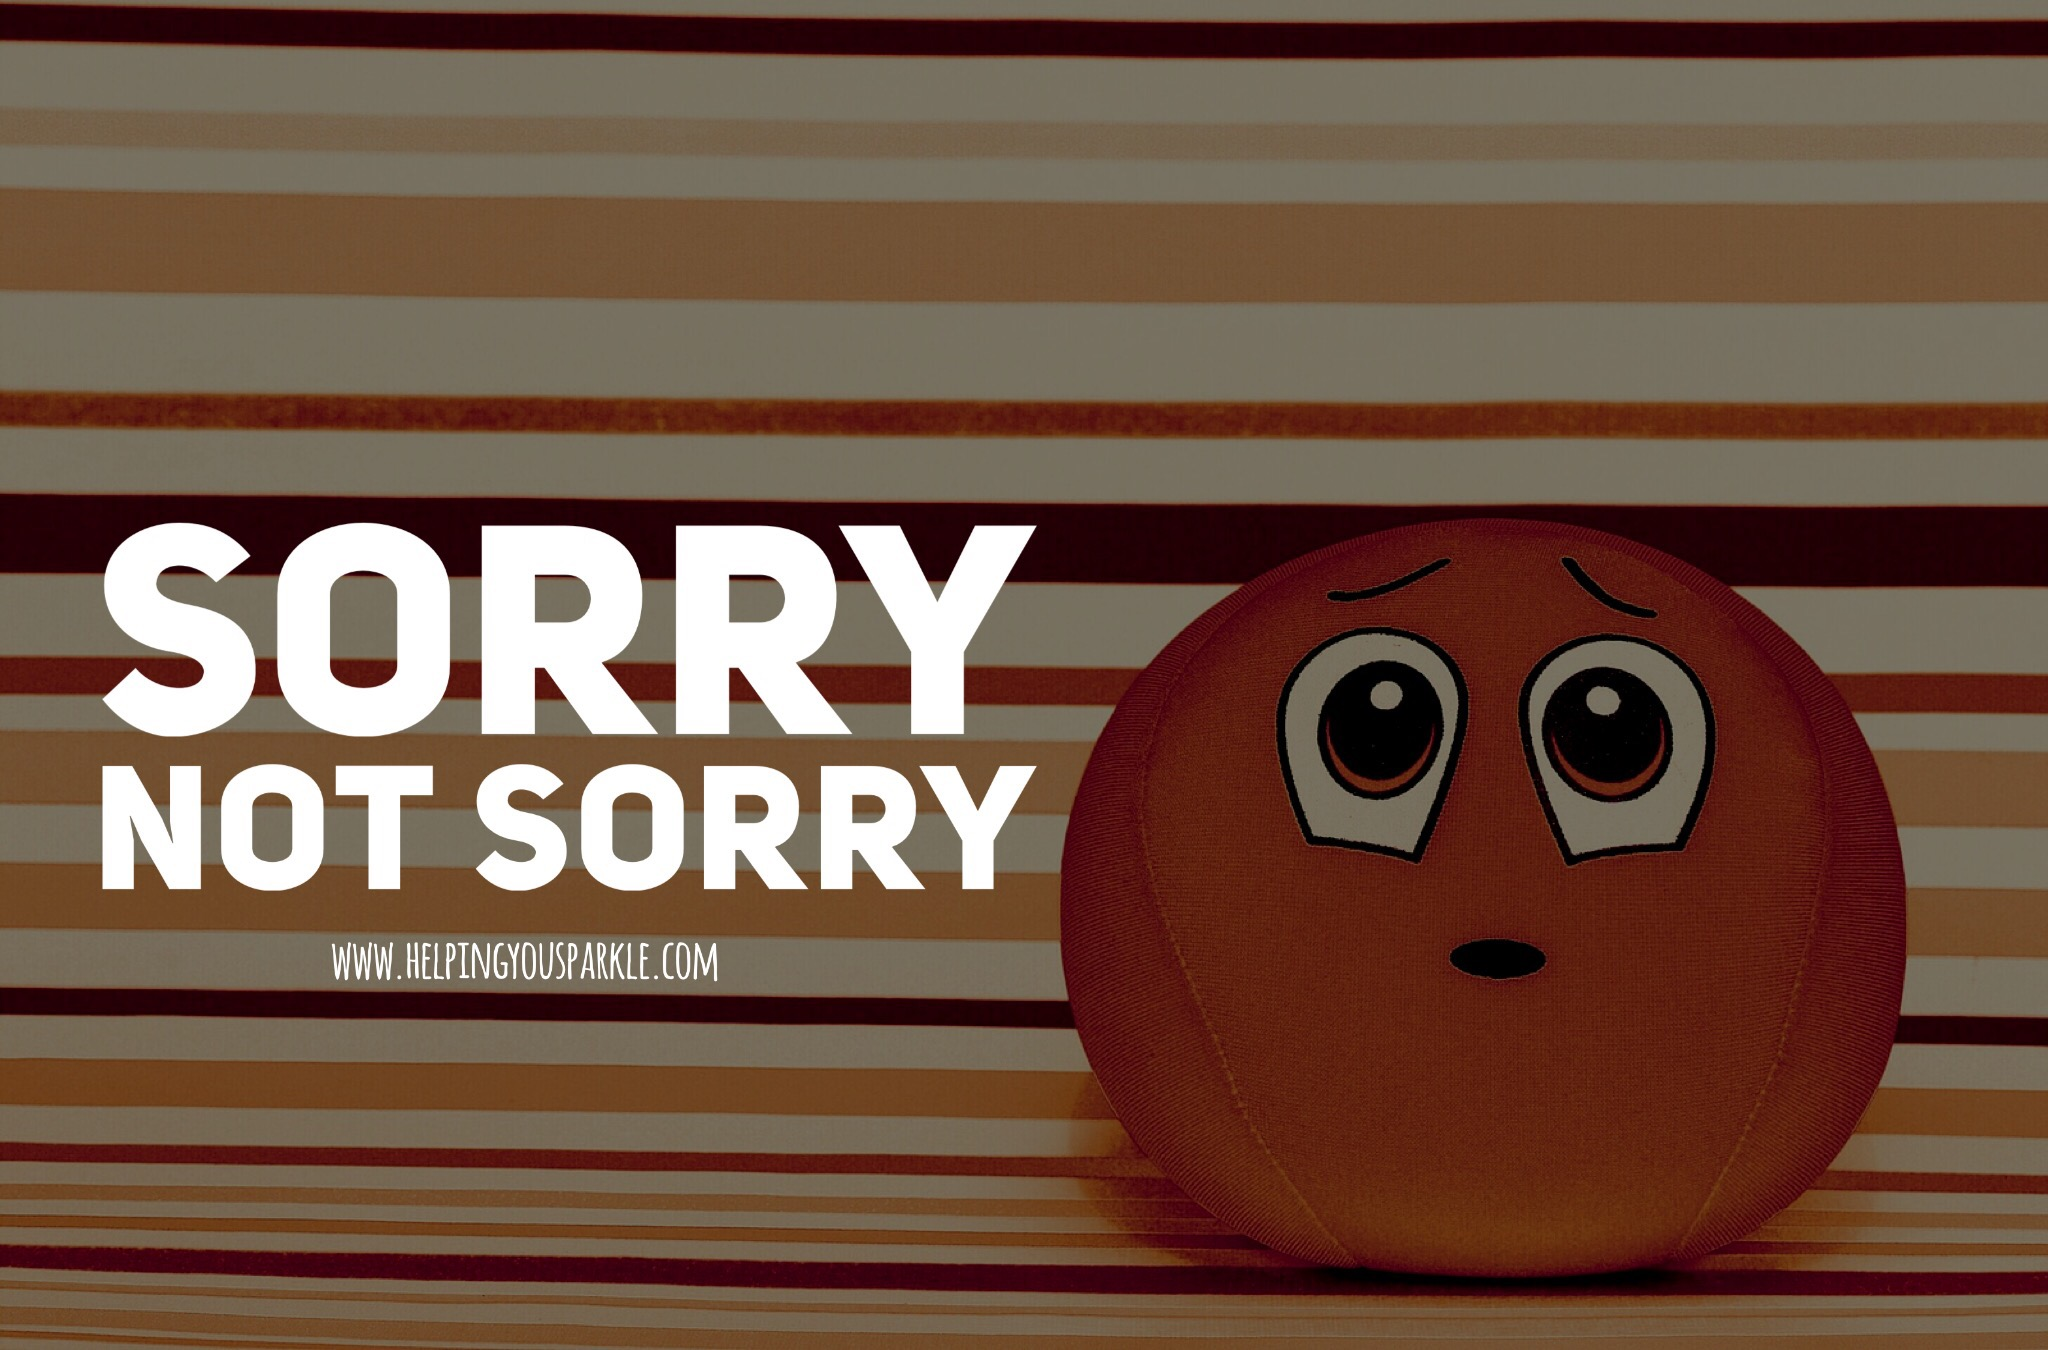 Sorry, not sorry – why we need to stop apologising when it's not our fault